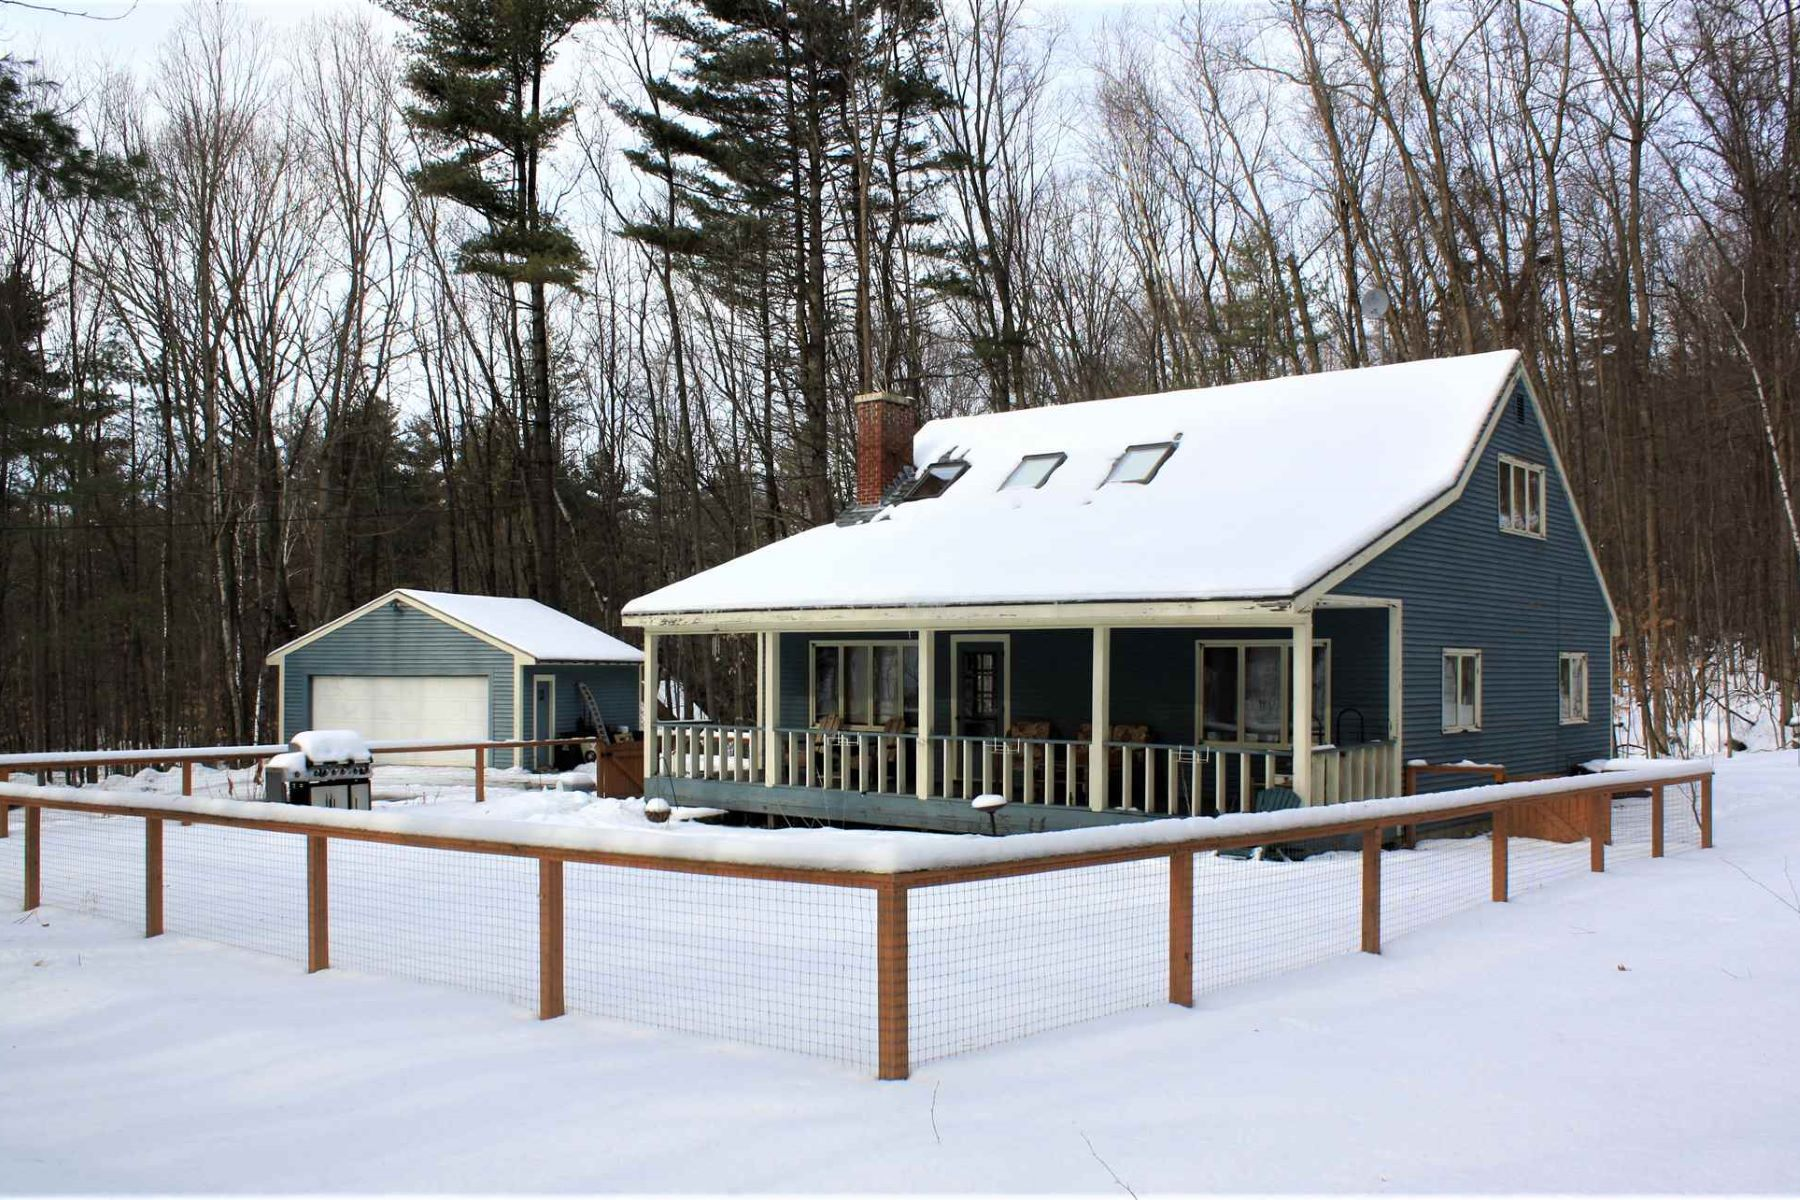 Single Family Homes for Sale at Lovely, Cape Style home with open floor plan 337 Burnham Drive Middlebury, Vermont 05753 United States